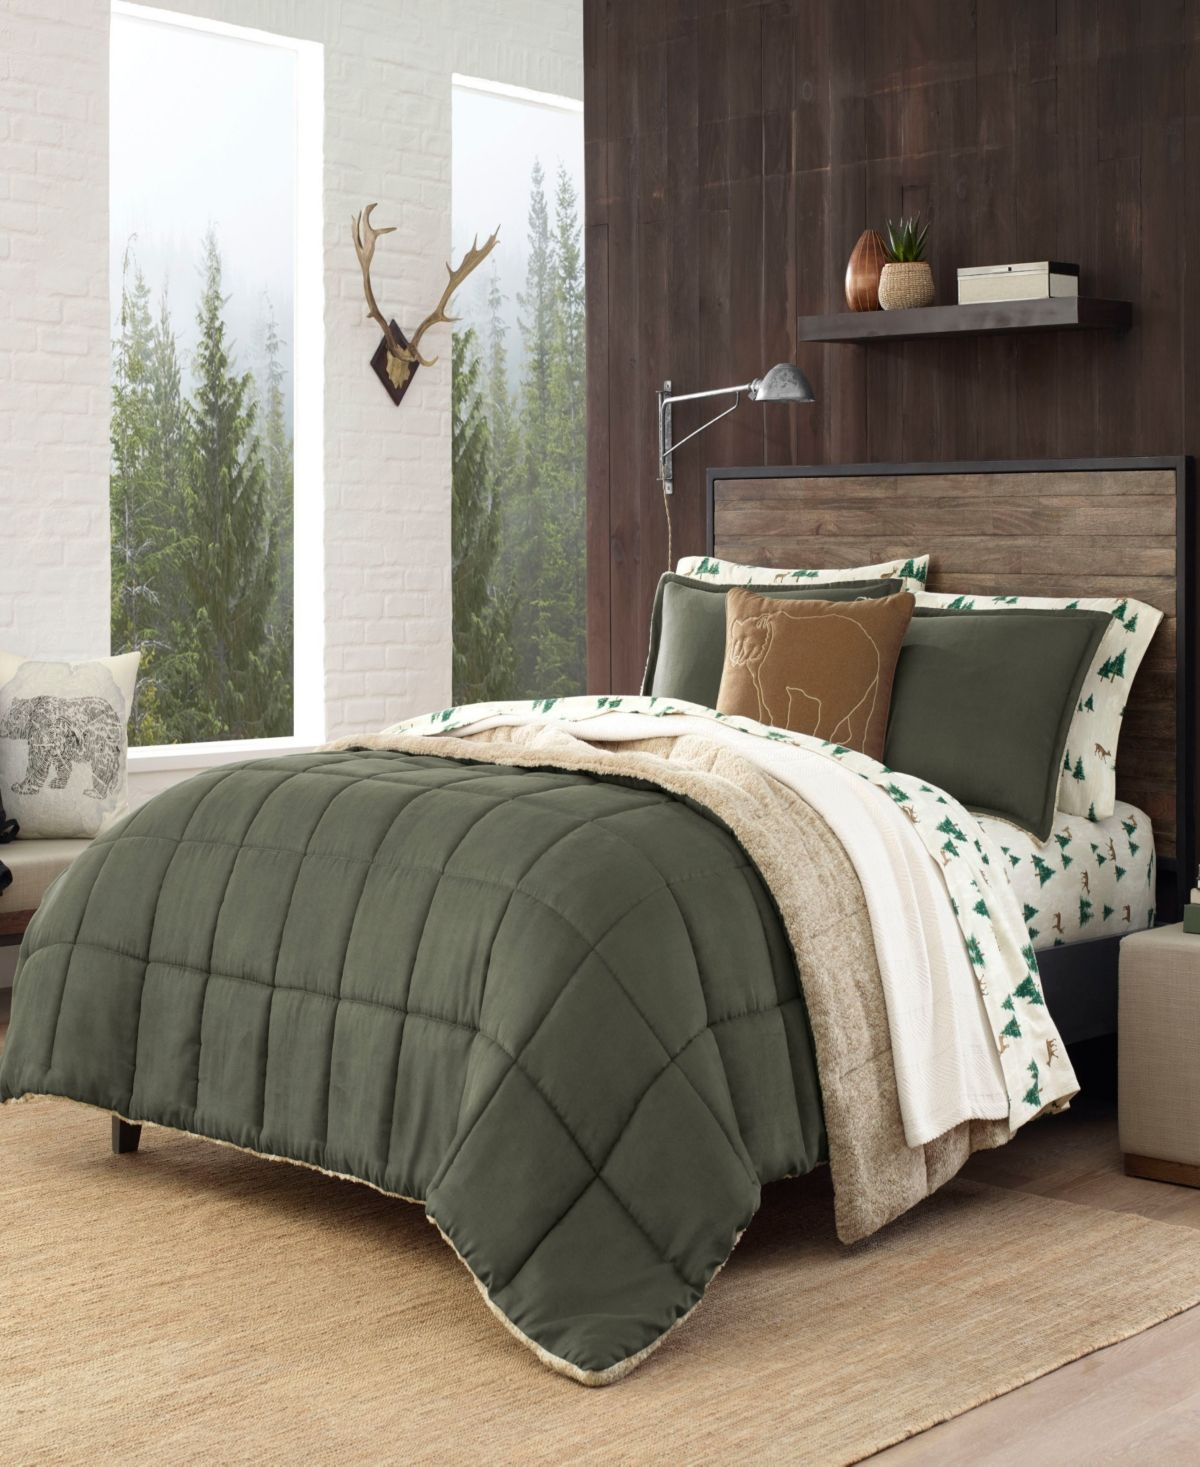 Eddie Bauer Sherwood Dark Green Comforter Set Twin Reviews Comforters Fashion Bed Bath Macy S In 2020 Green Comforter Green Comforter Sets Comforter Sets